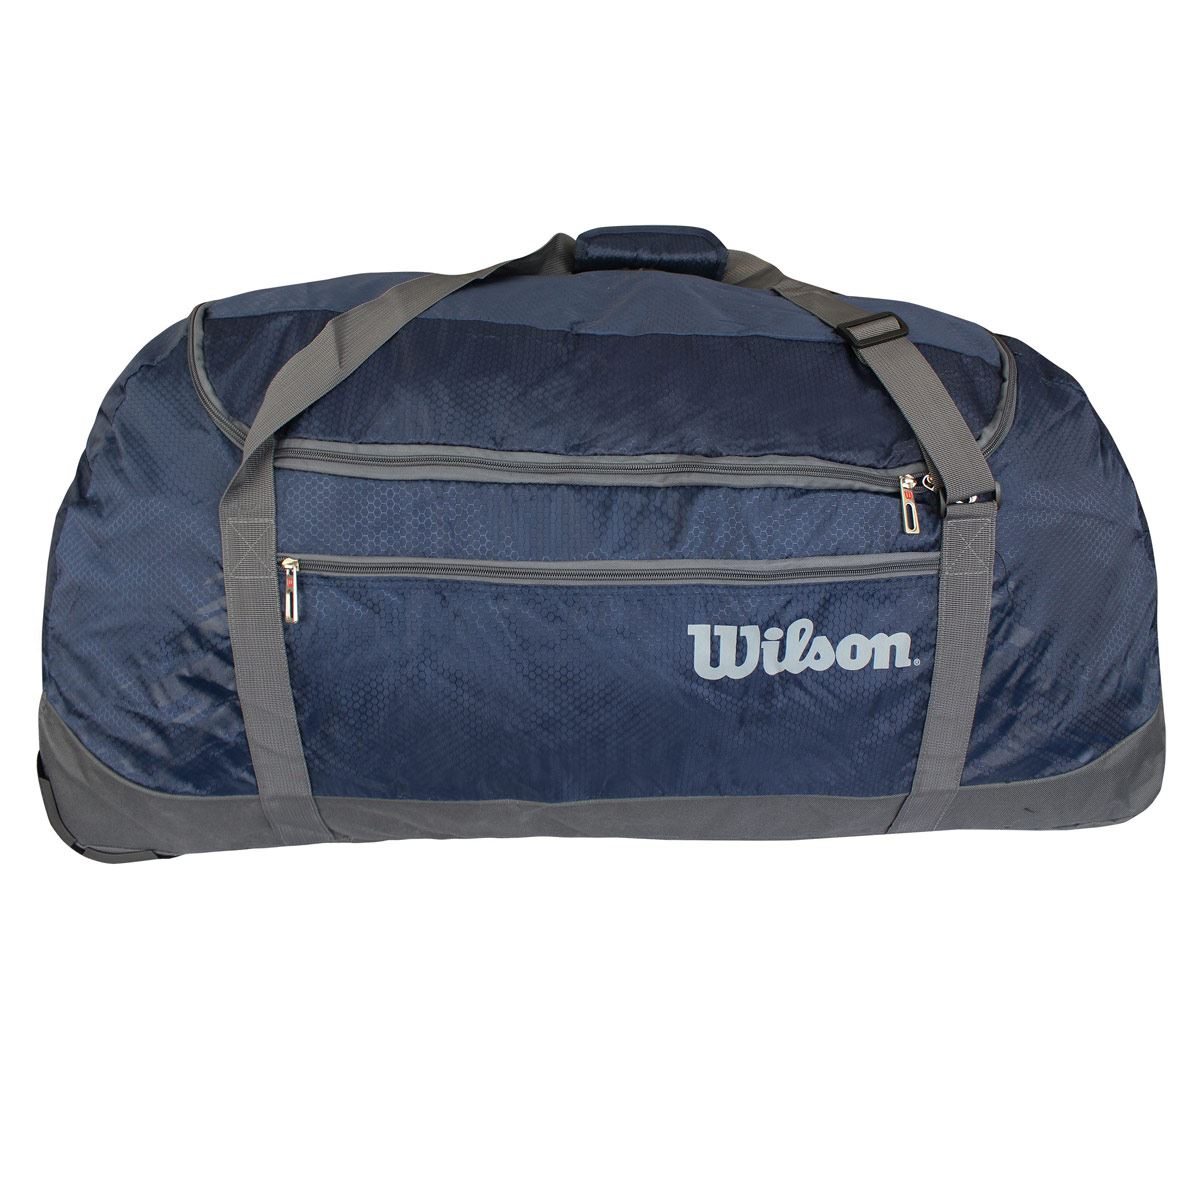 Maleta Enrollable Wilson Is-15308 31